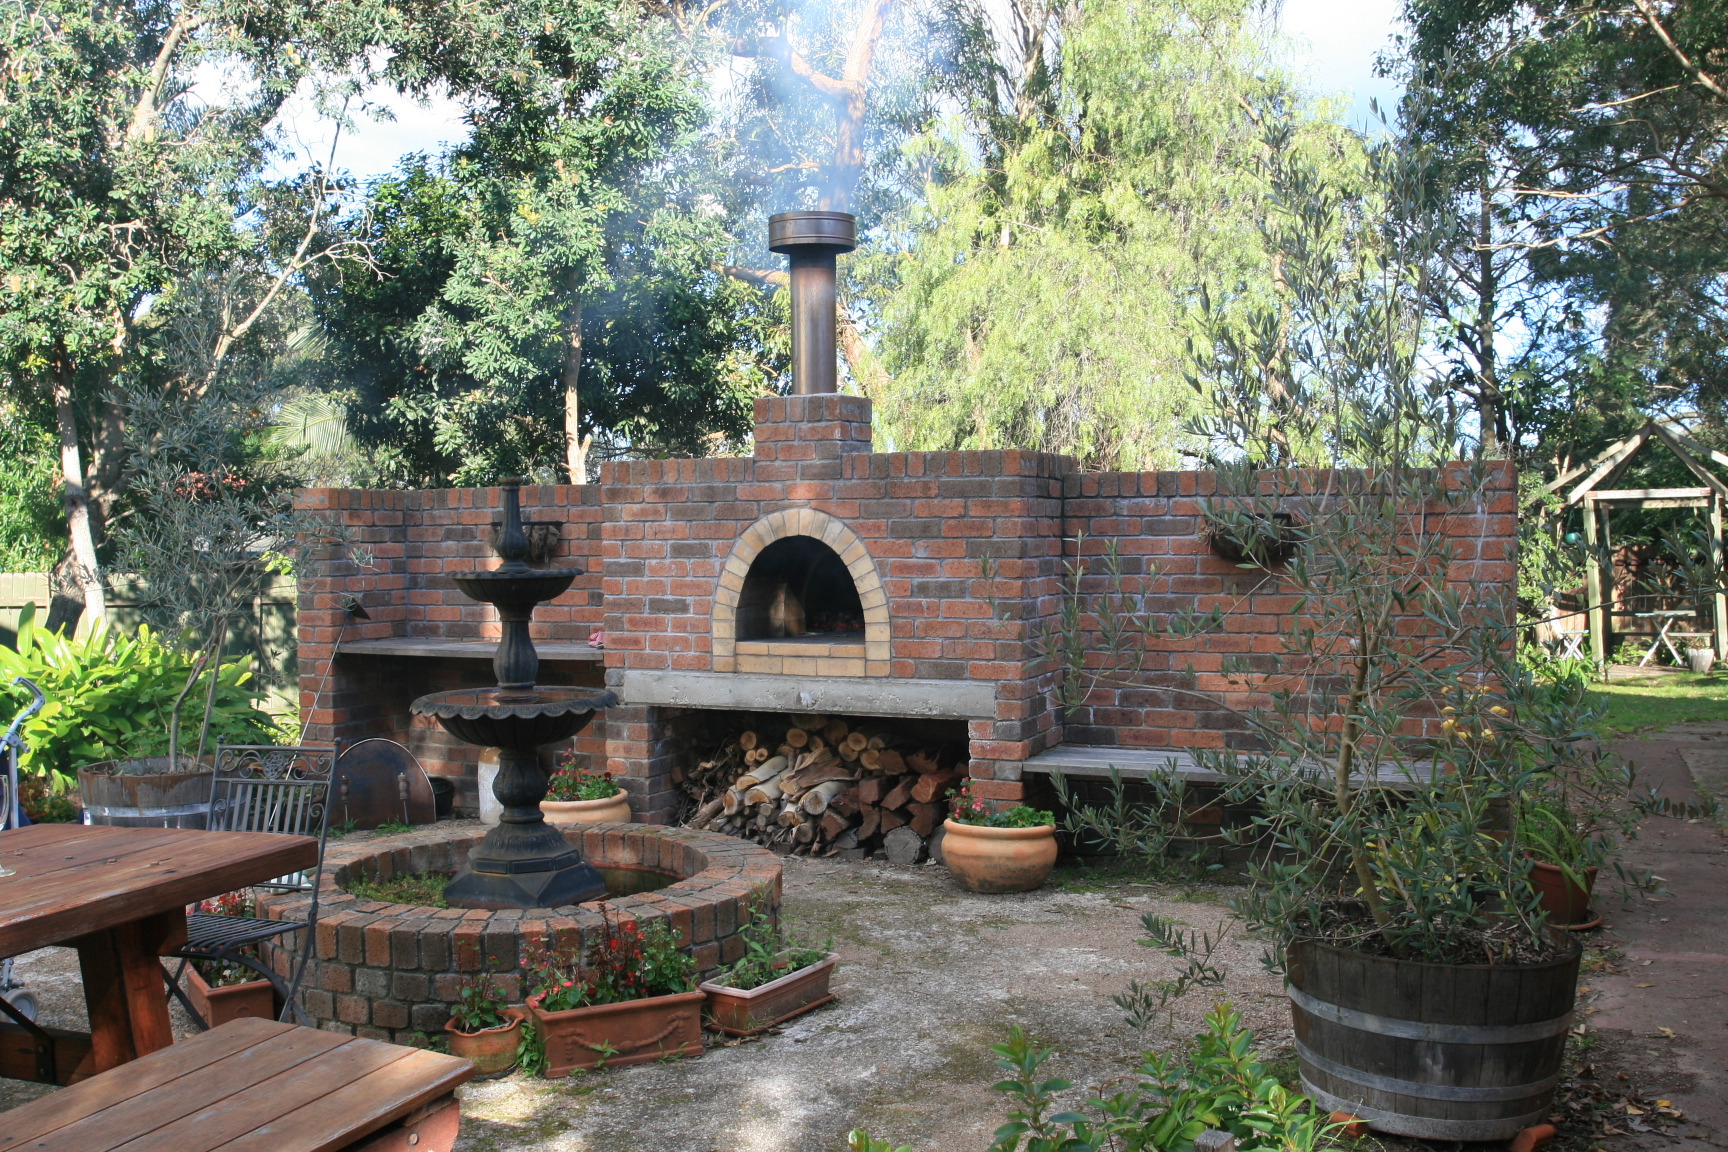 outdoor brick pizza ovens and fountain